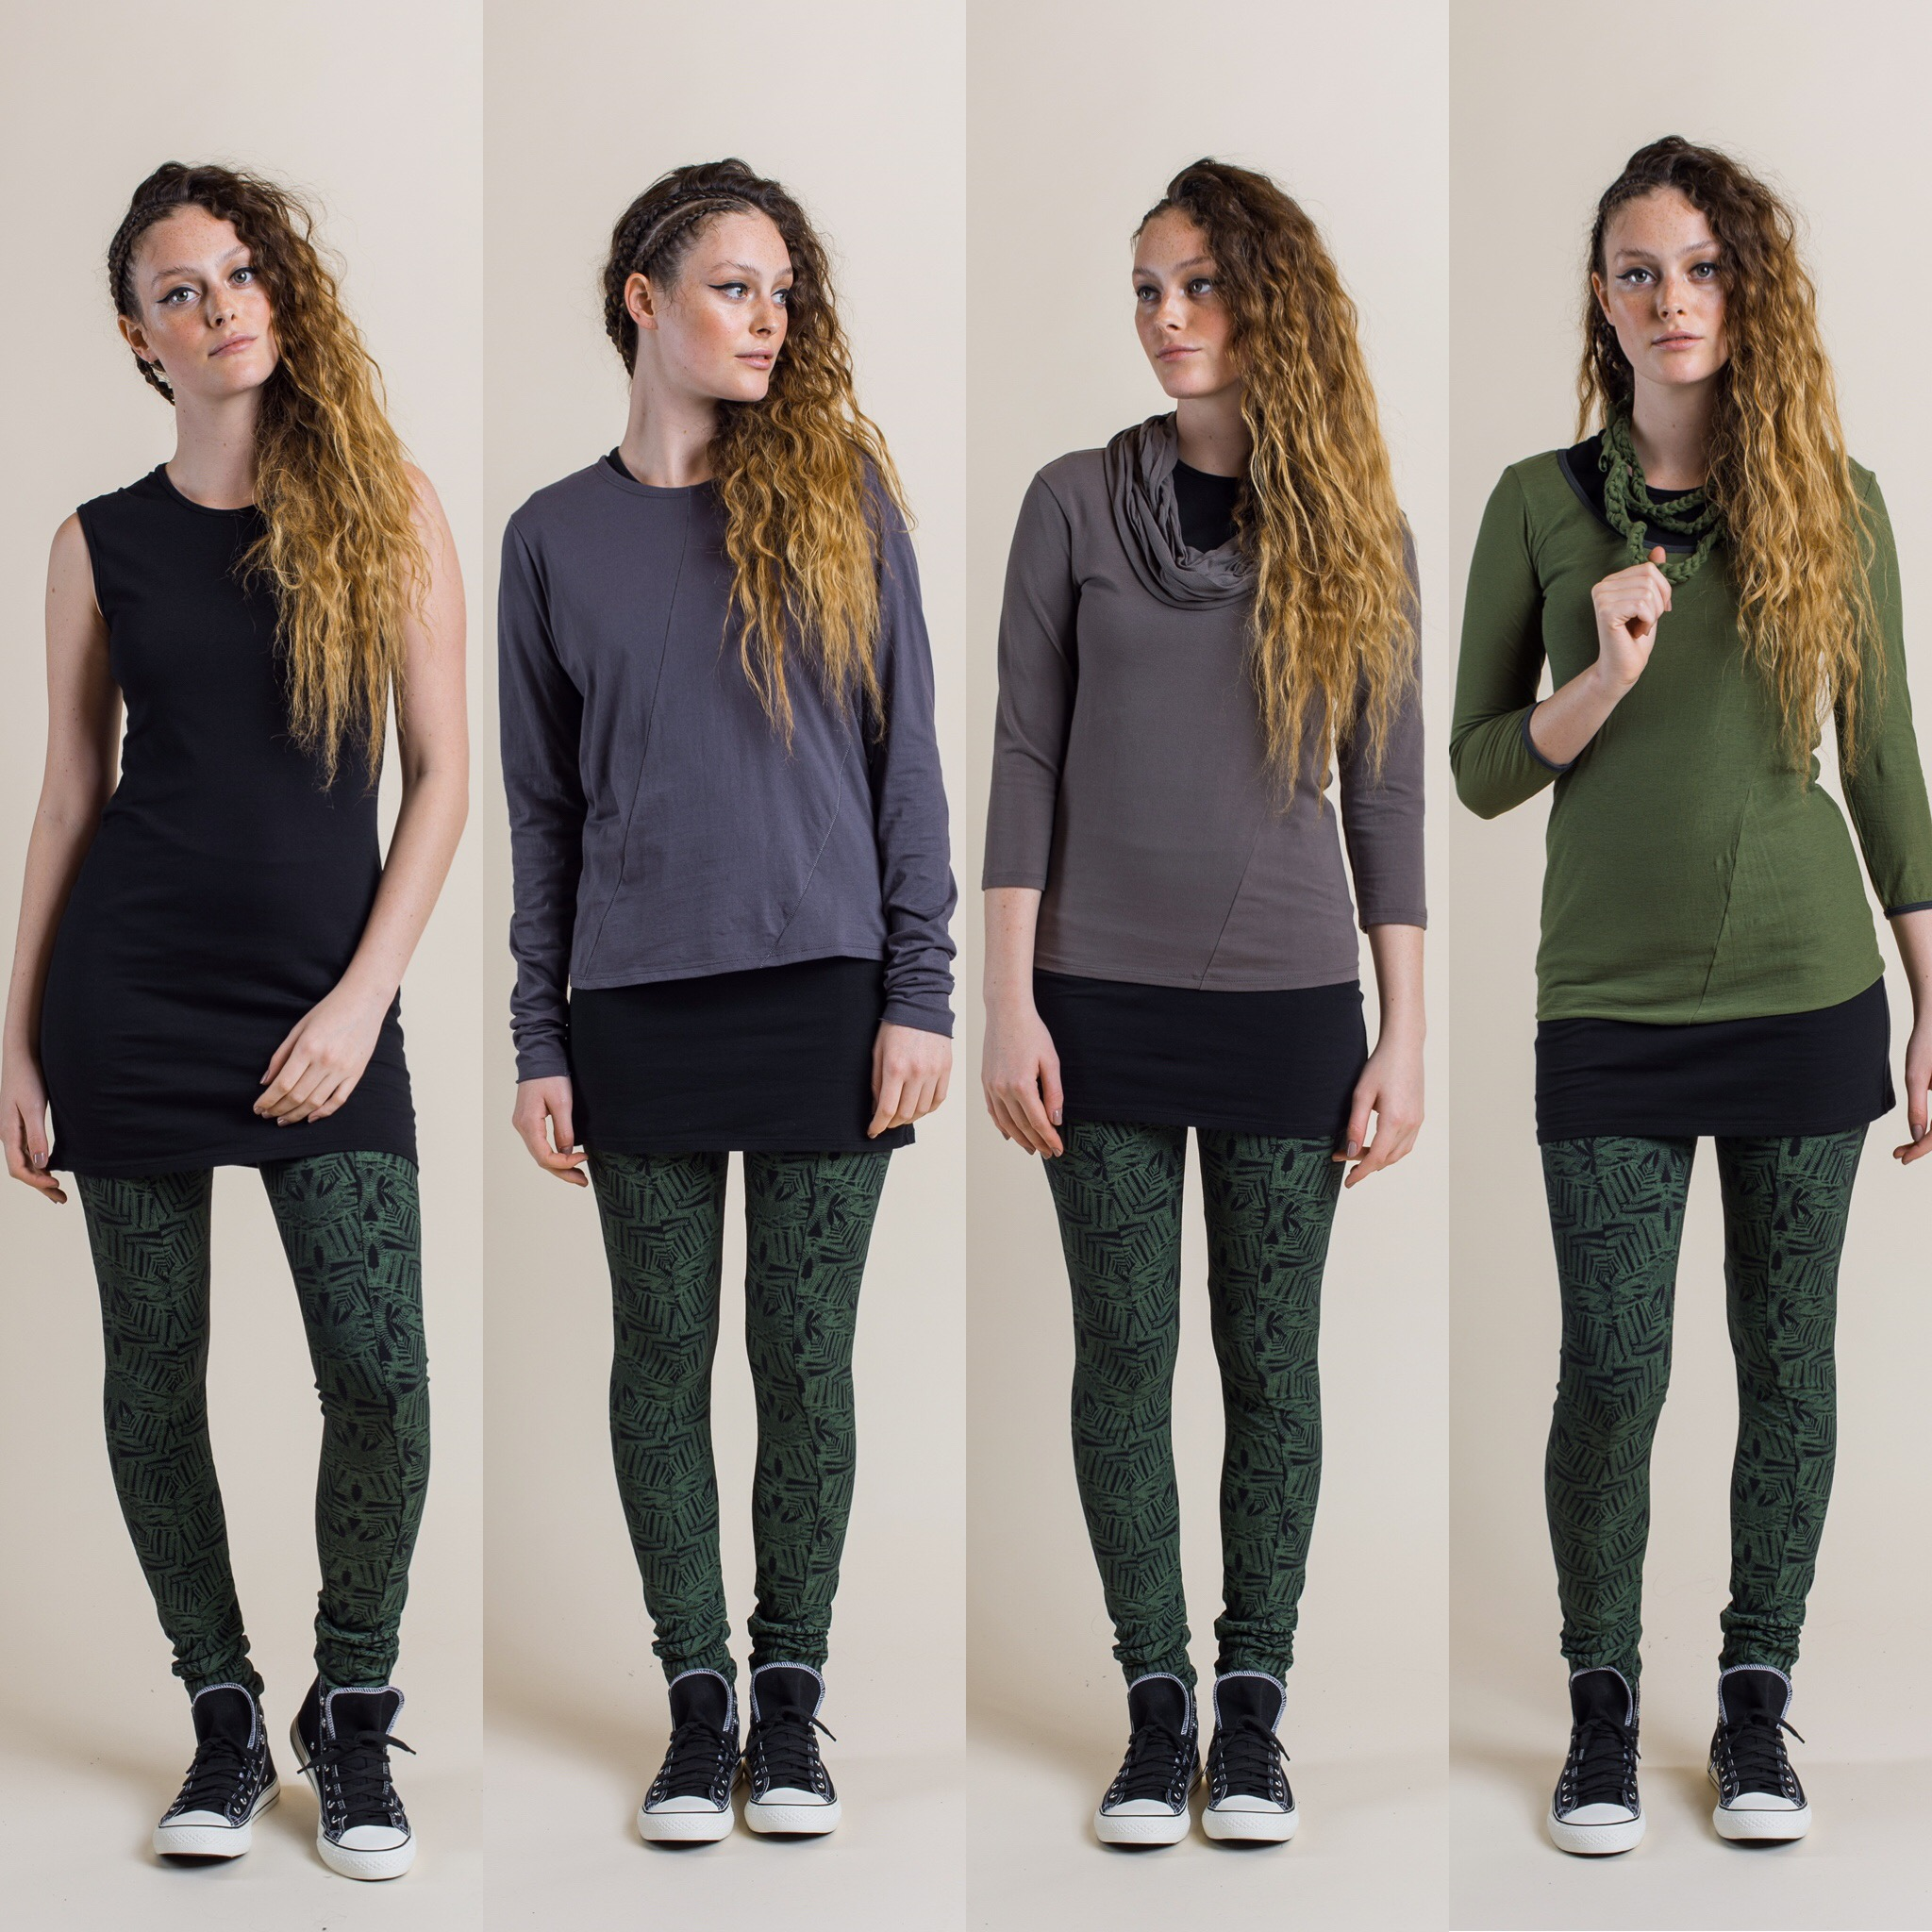 Fern Printed leggings in fern colour, with different tops added. Perla long sleeve top in shadow, Robin Top in rock, Swivel top in fern and a Tendril necklace/belt.